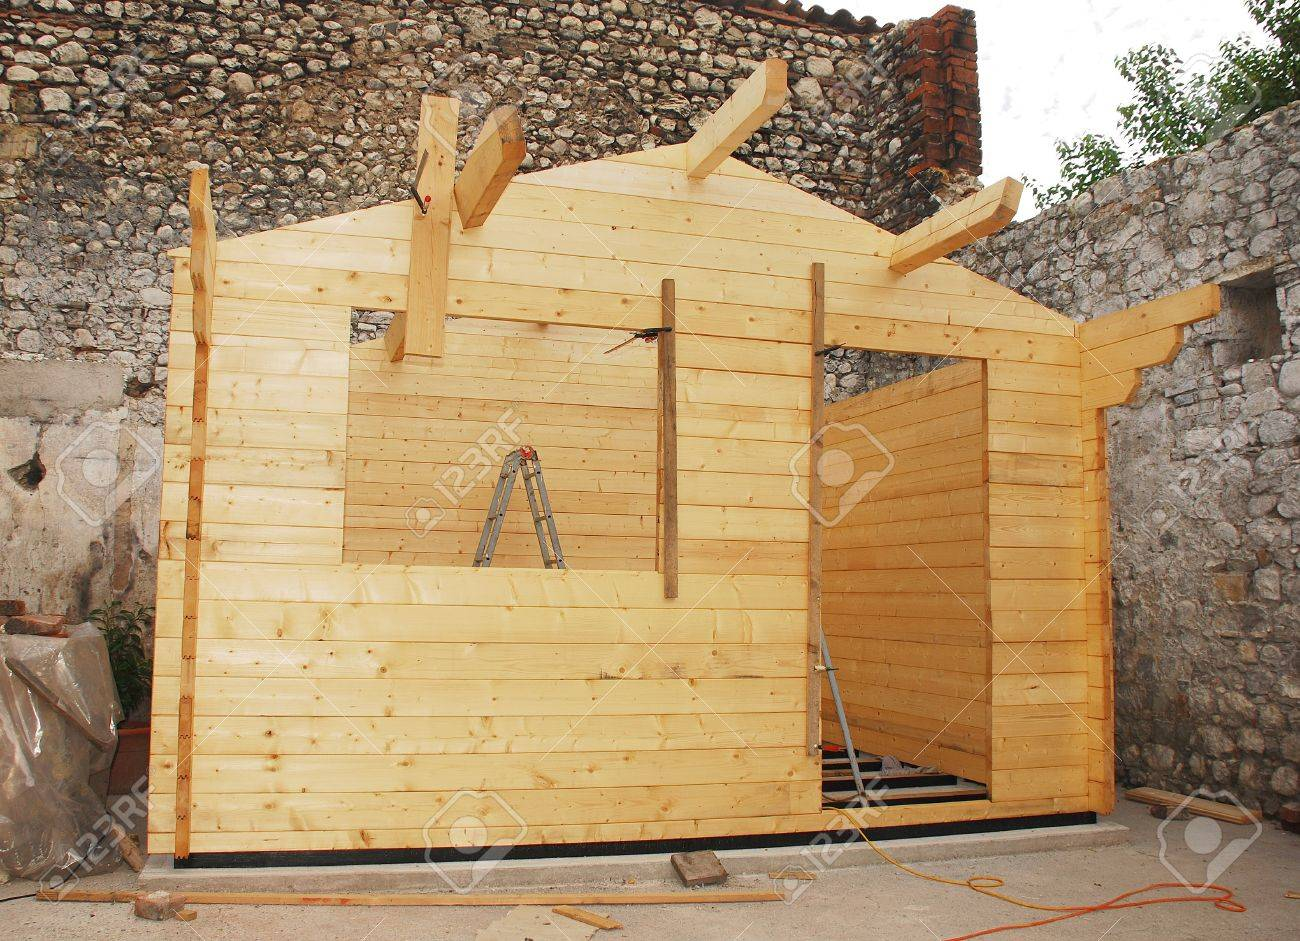 A partially built small prefabricated wooden cabin on a concrete base. The wall beams are in place up to the roof level and the roof rafters have been placed. It is  located within the old stone walls of a now derelict Italian farmhouse Stock Photo - 8475364